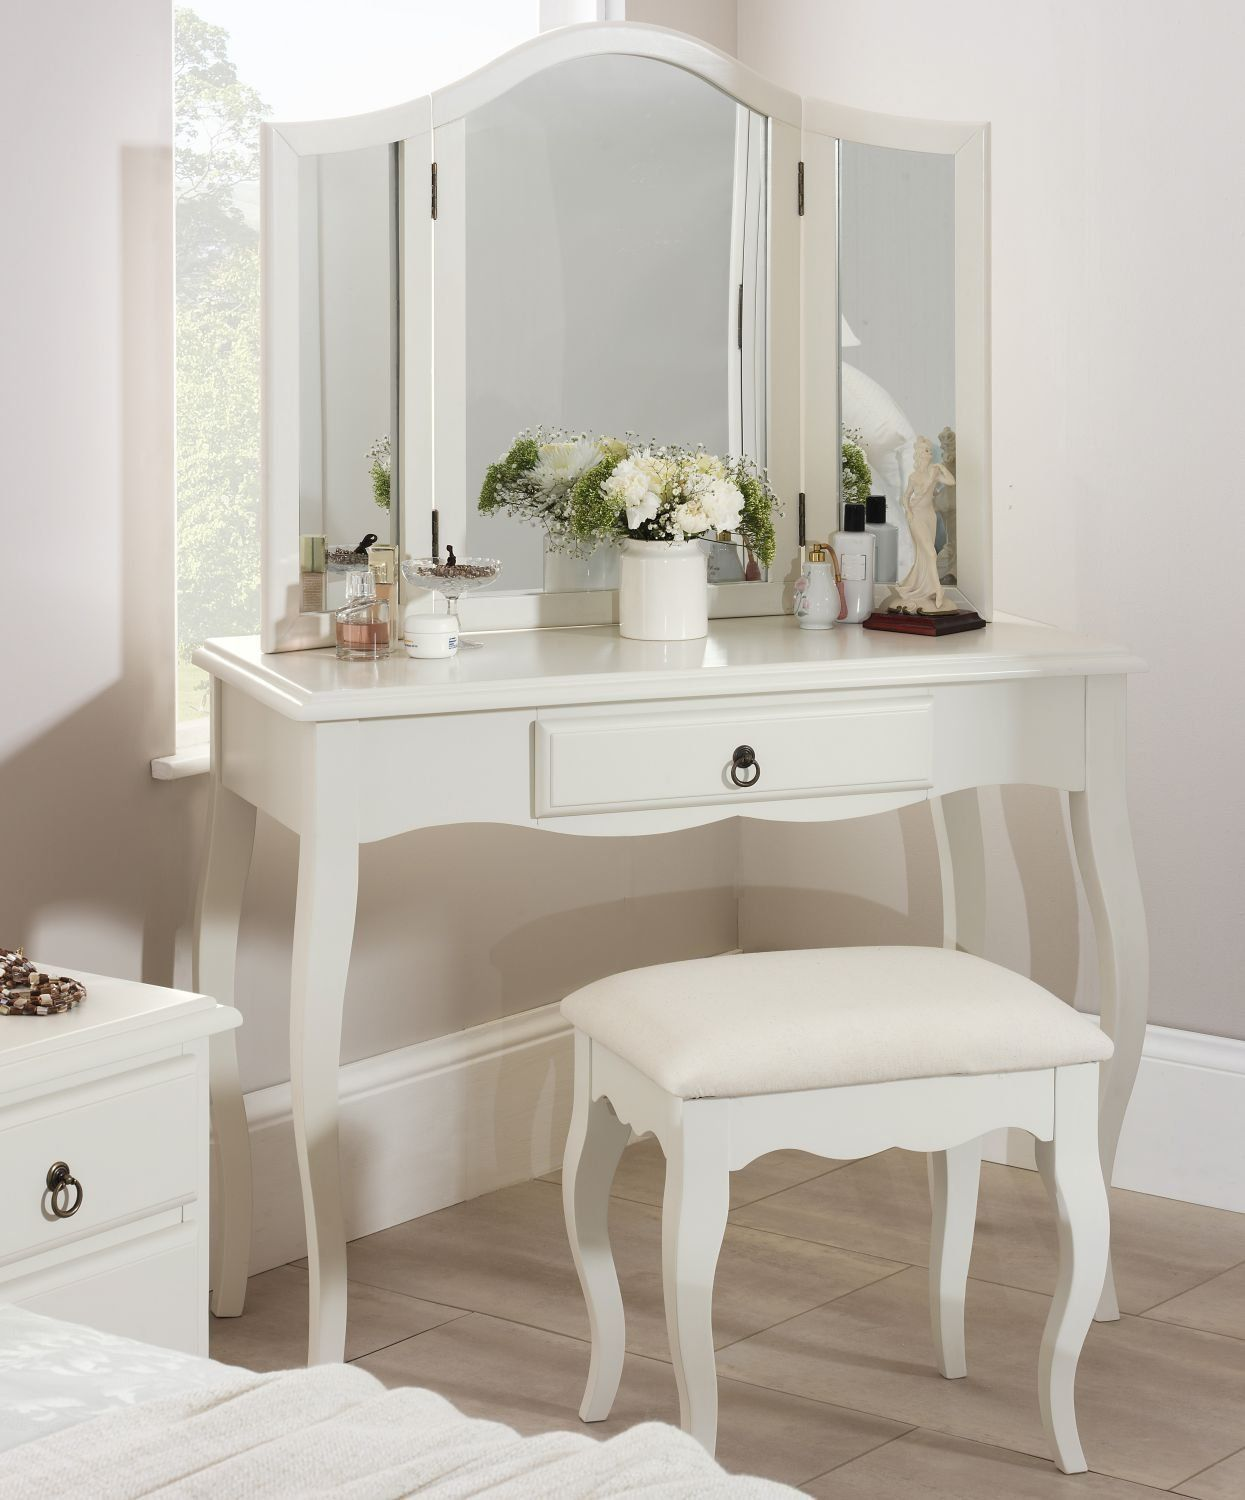 Good Romance Dressing Table Mirror, Large 3 Way Mirror, Assembled: Amazon.co.uk:  Kitchen U0026 Home